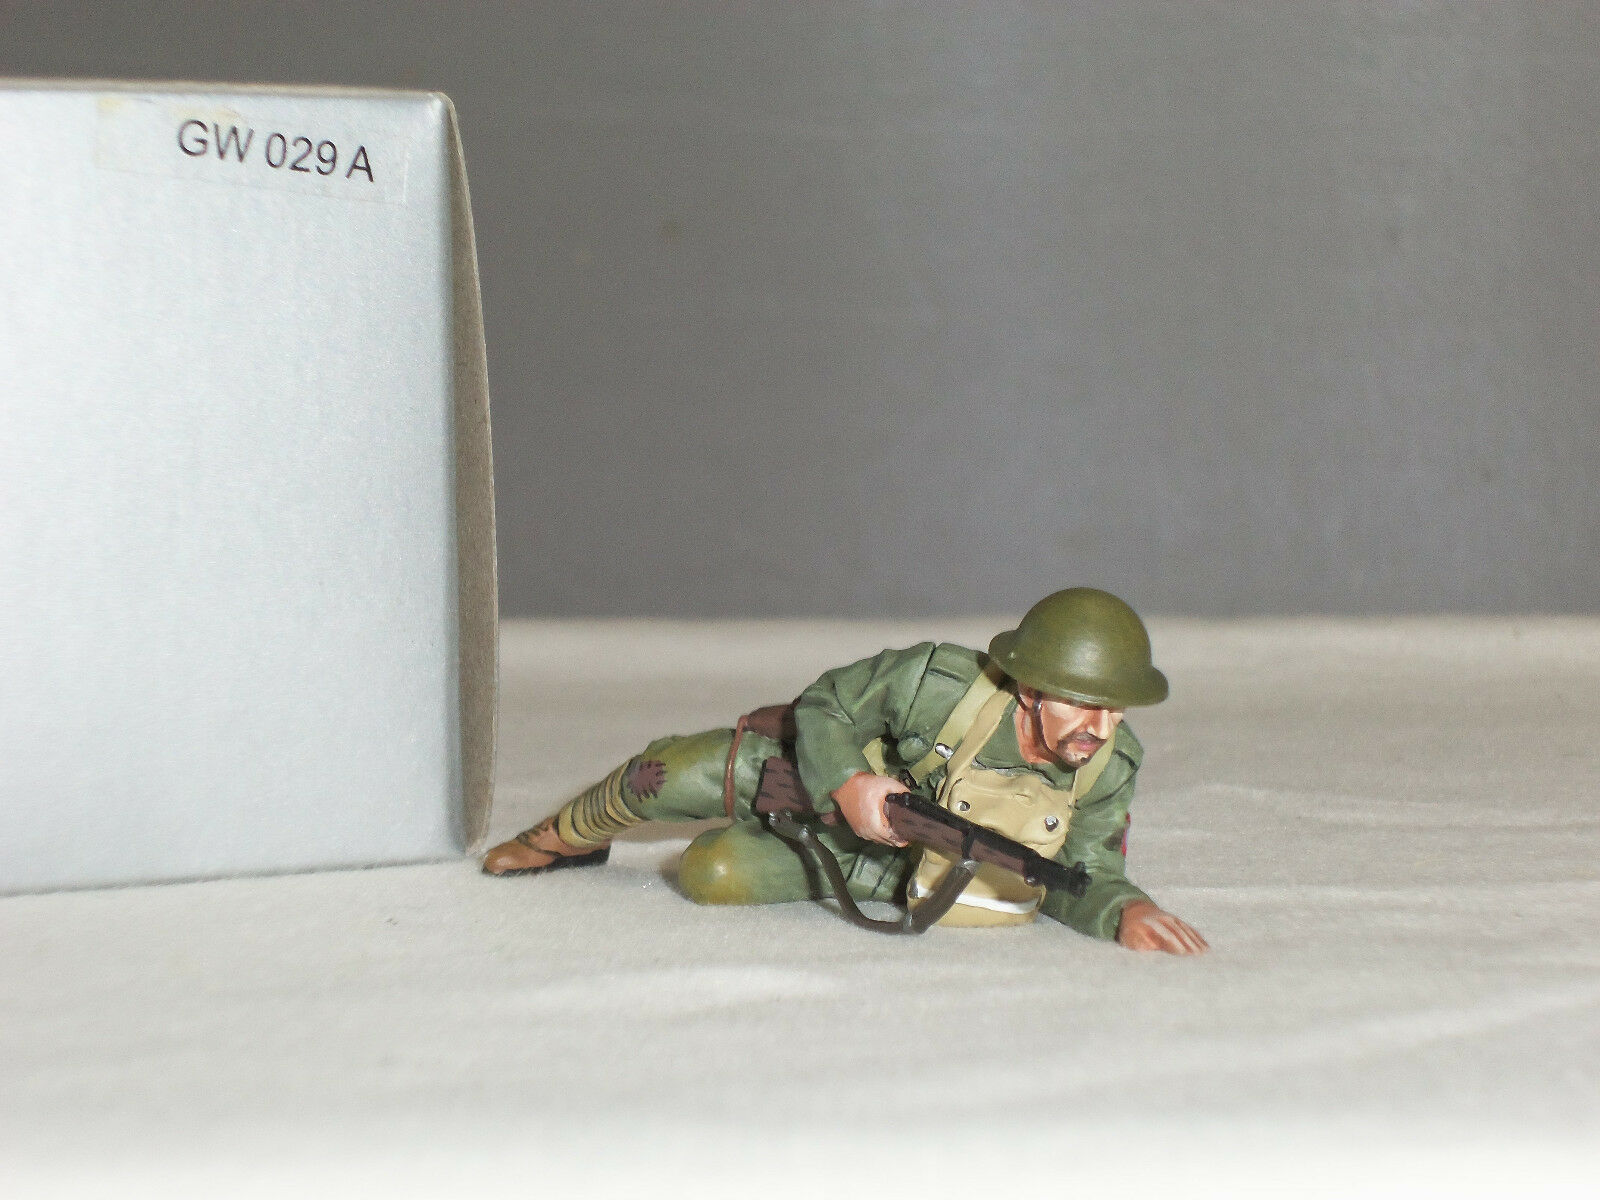 THOMAS GUNN GW029A US ARMY PRIVATE HENRY JOHNSON CRAWLING WITH RIFLE TOY SOLDIER